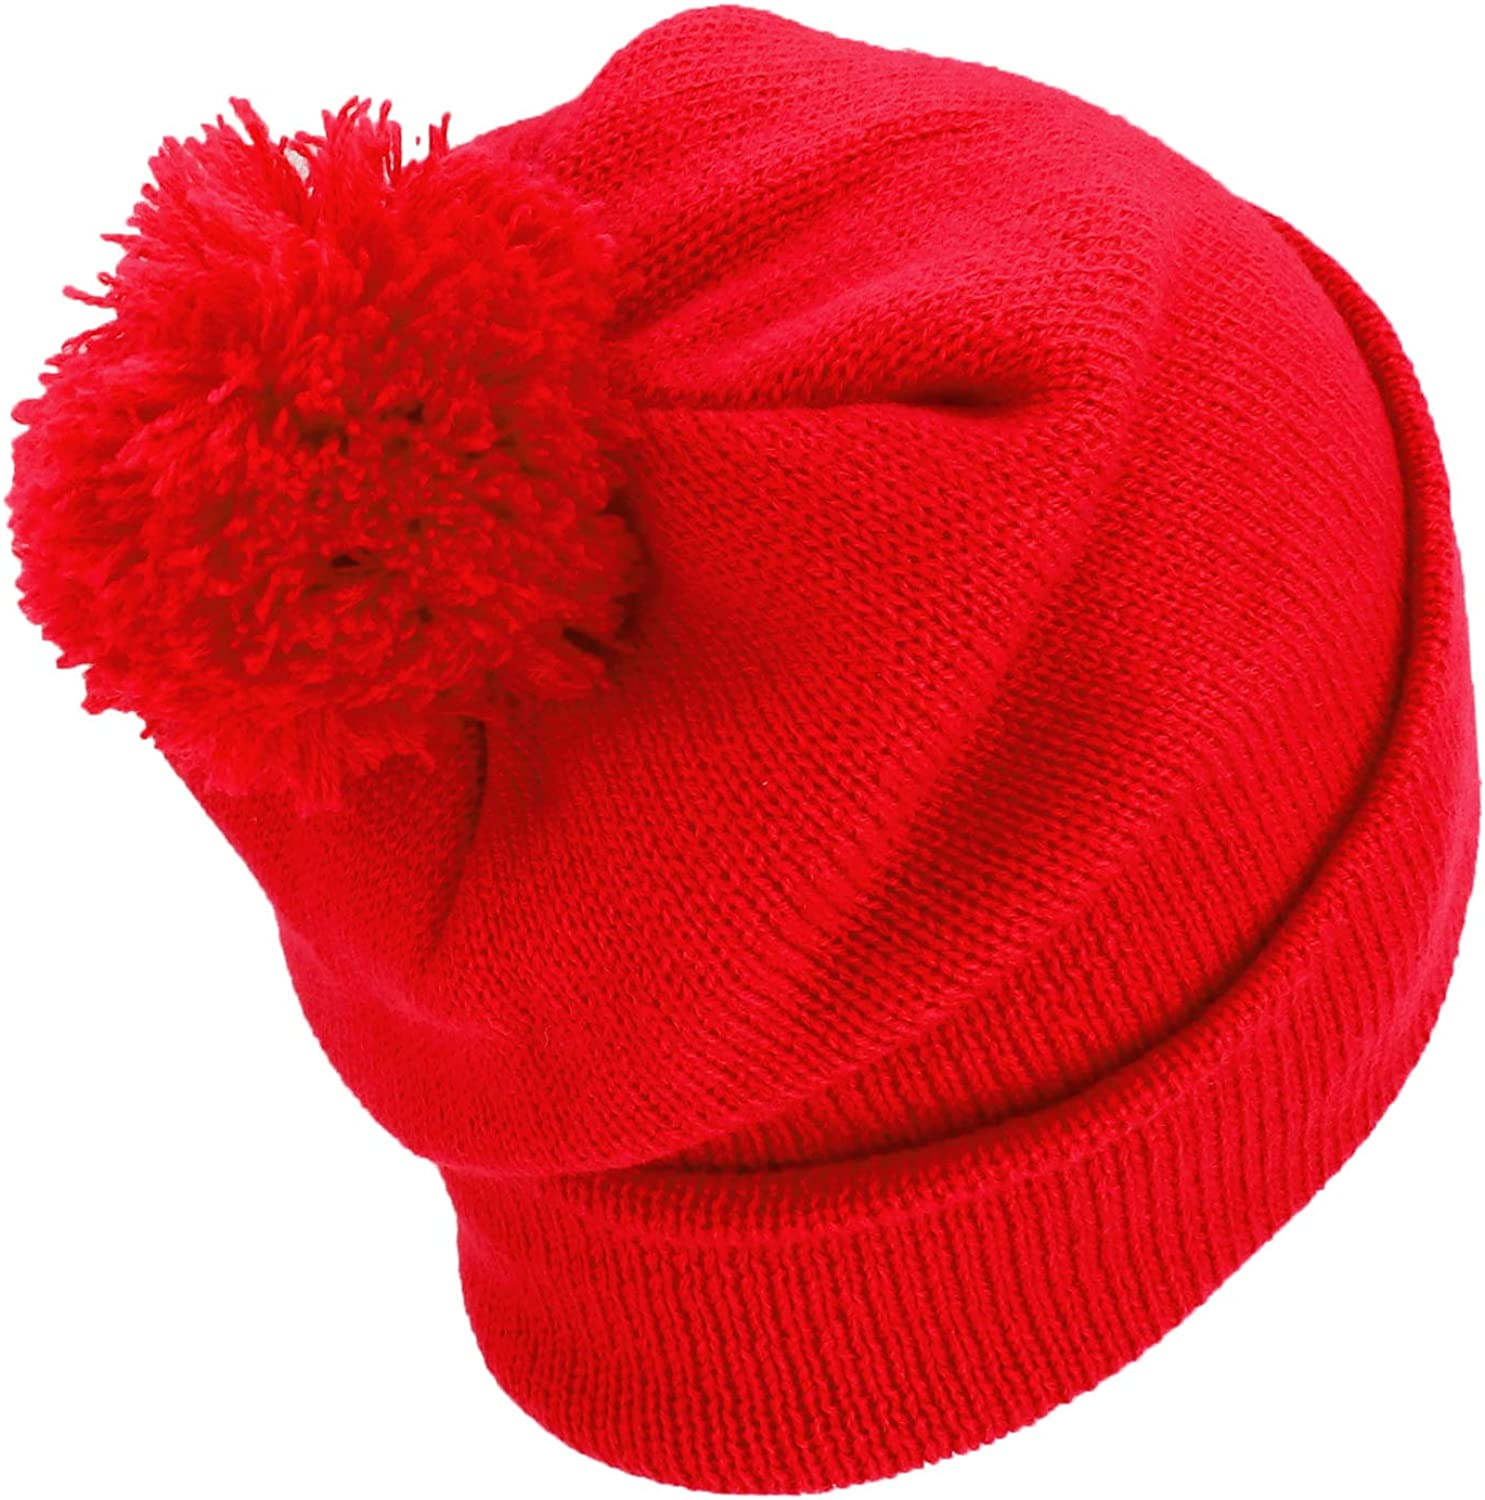 Armycrew Solid Color Cuff Long Pom Pom Winter Beanie Hat